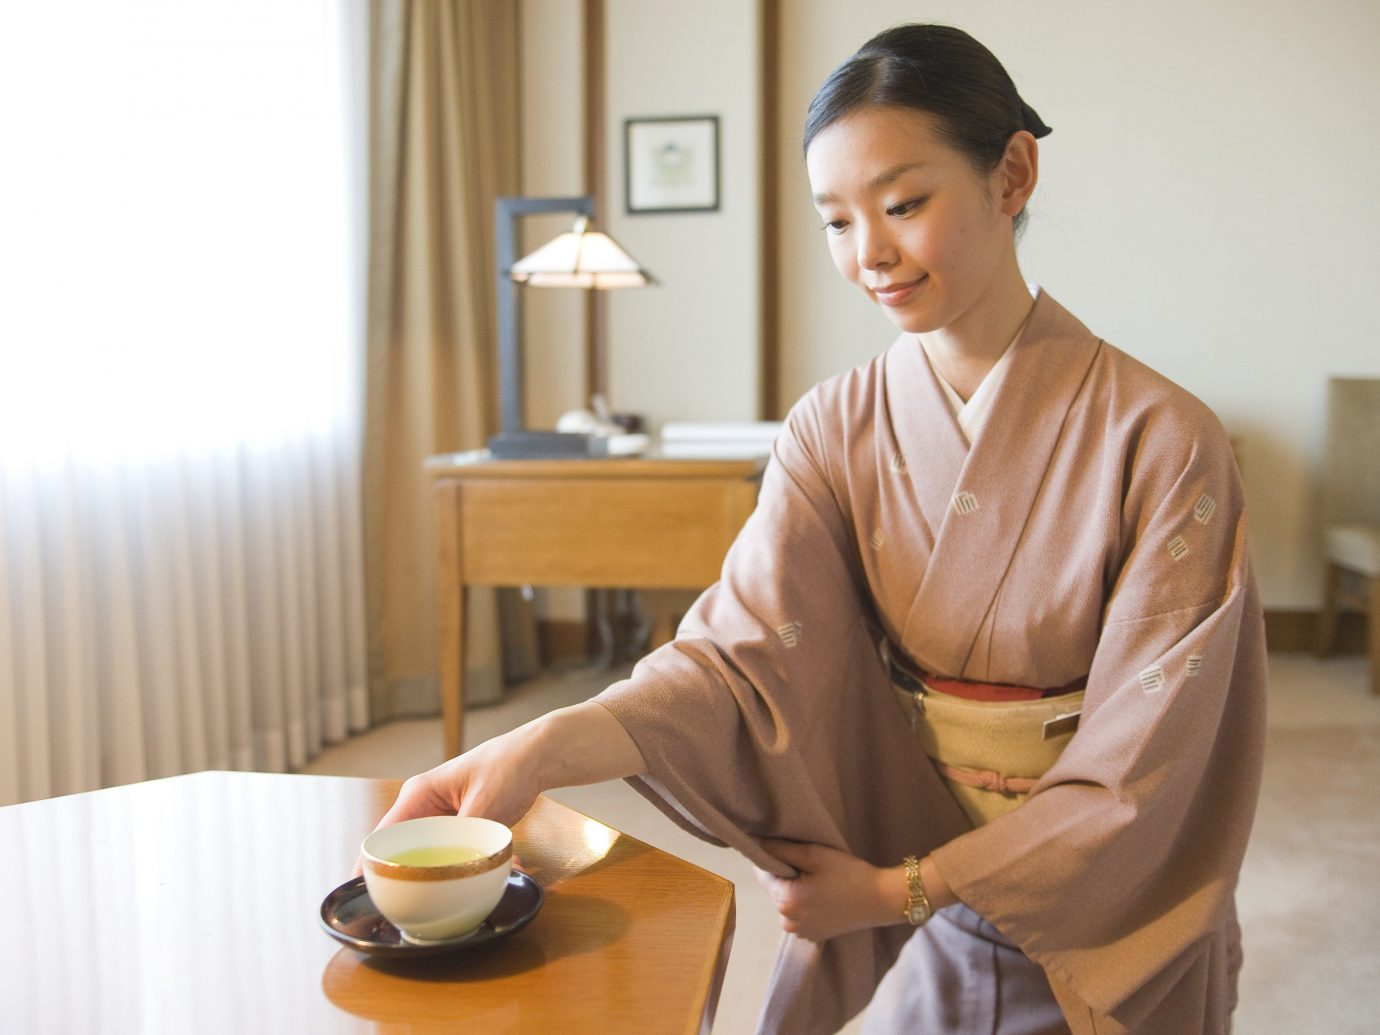 Hotels Japan Tokyo person indoor table wall human action human positions sitting cook dining table